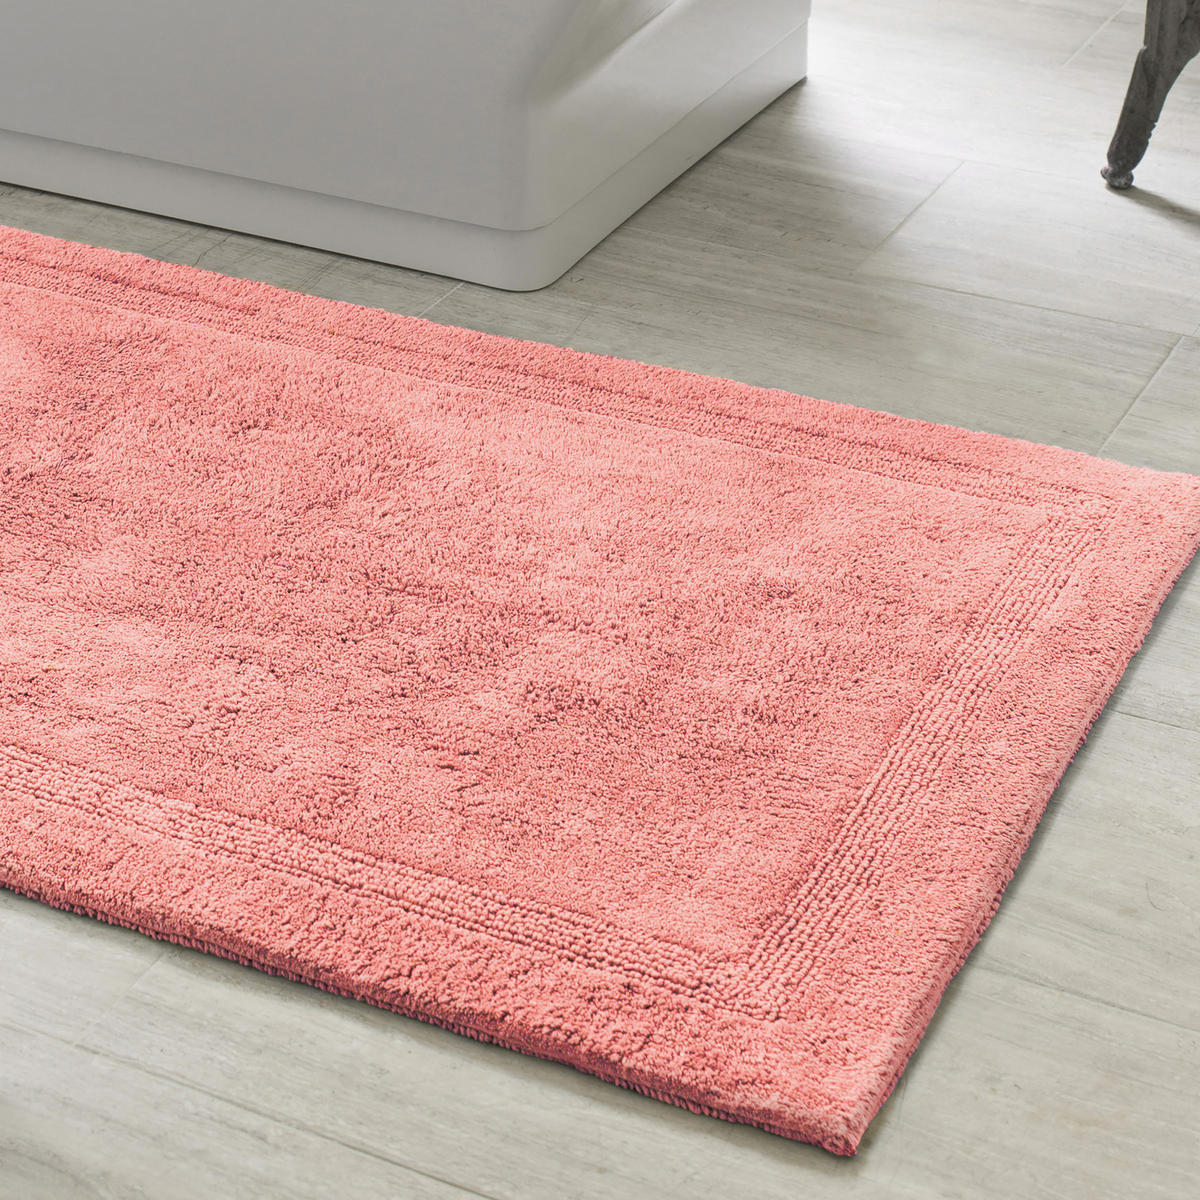 "Bathroom Rugs 36 X 72: Pine Cone Hill Signature Coral Bath Rug 20"" X 30"